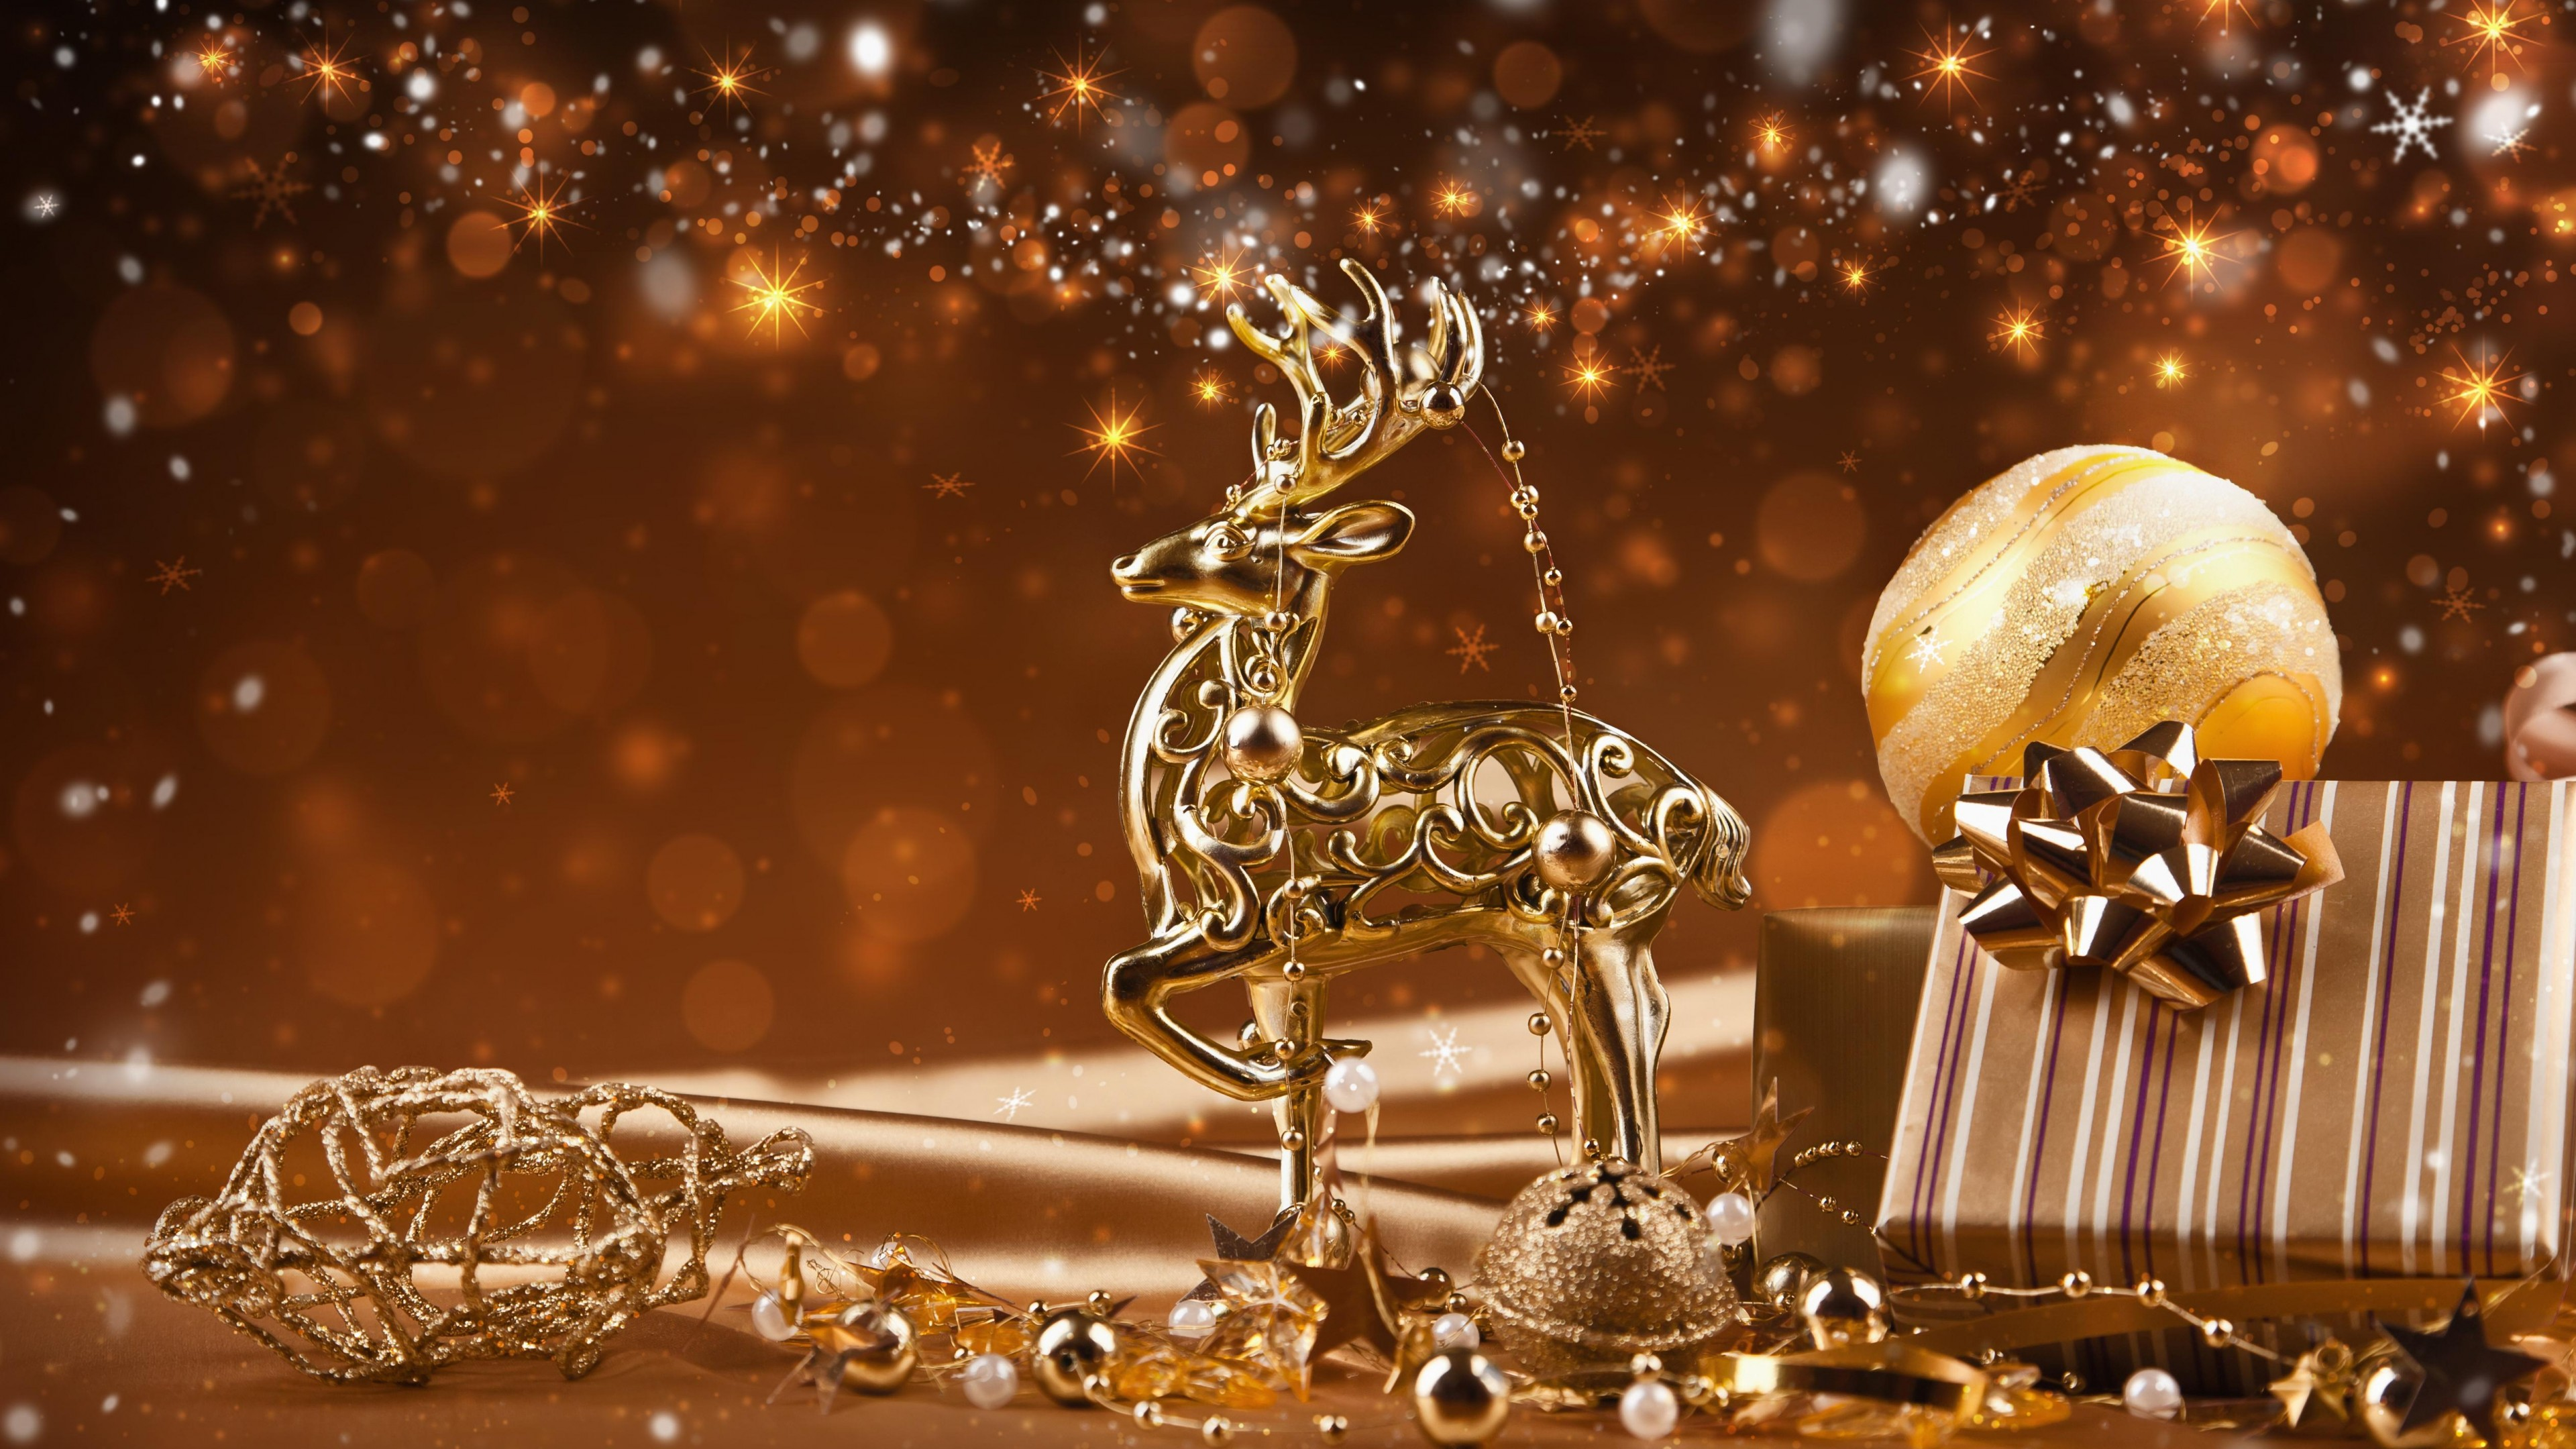 Golden Reindeer Christmas Decoration 4k Ultra HD Wallpaper and ...